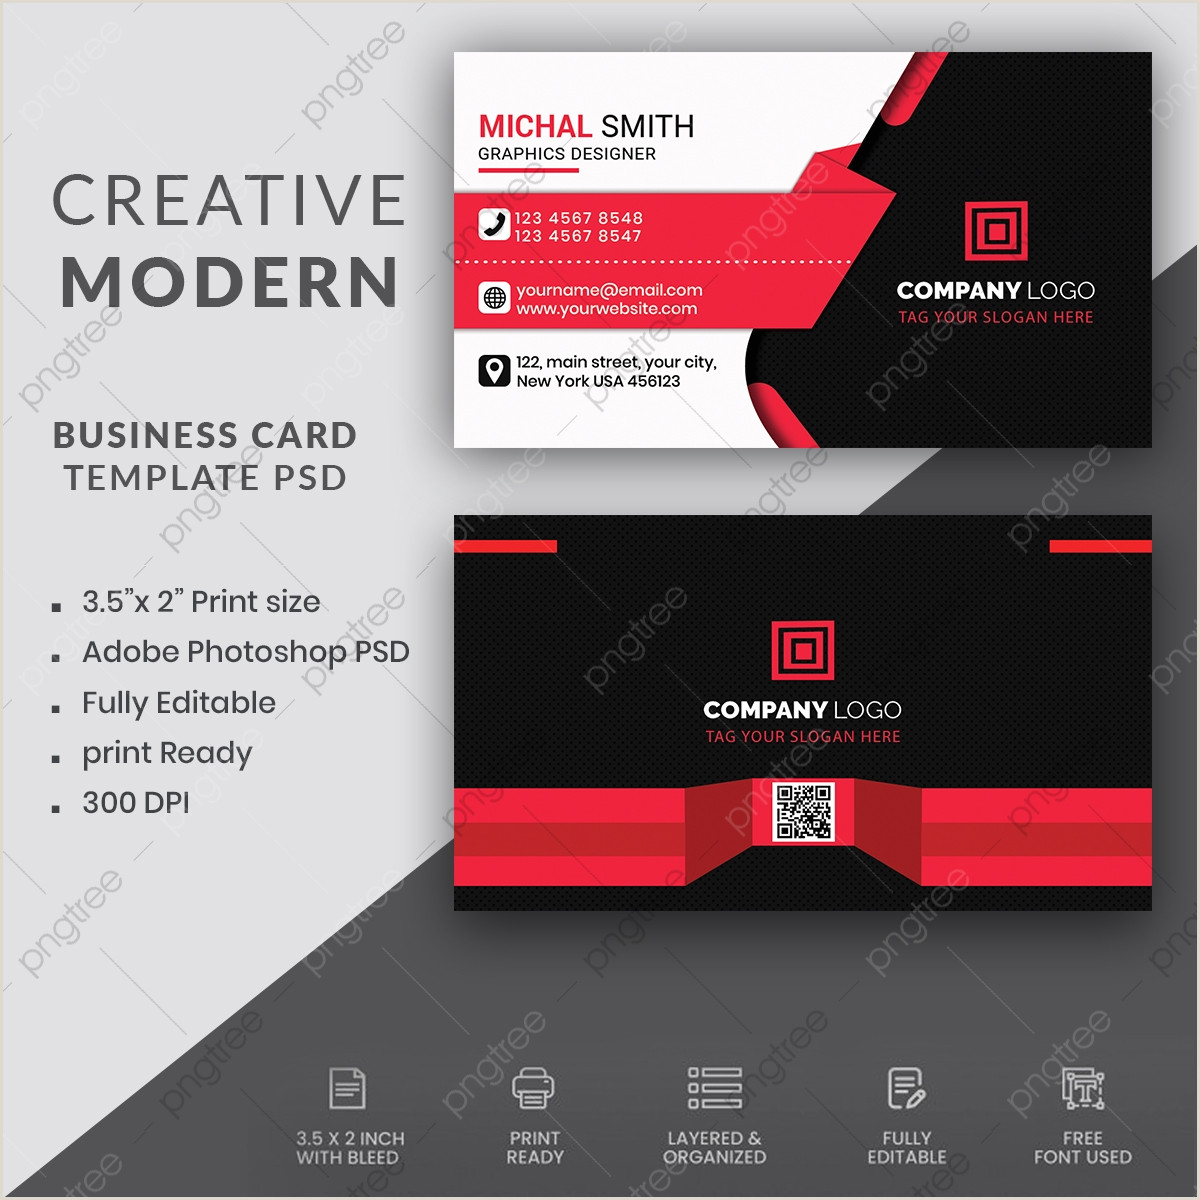 Personal Calling Card Designs Calling Card Png Vector And Psd Files